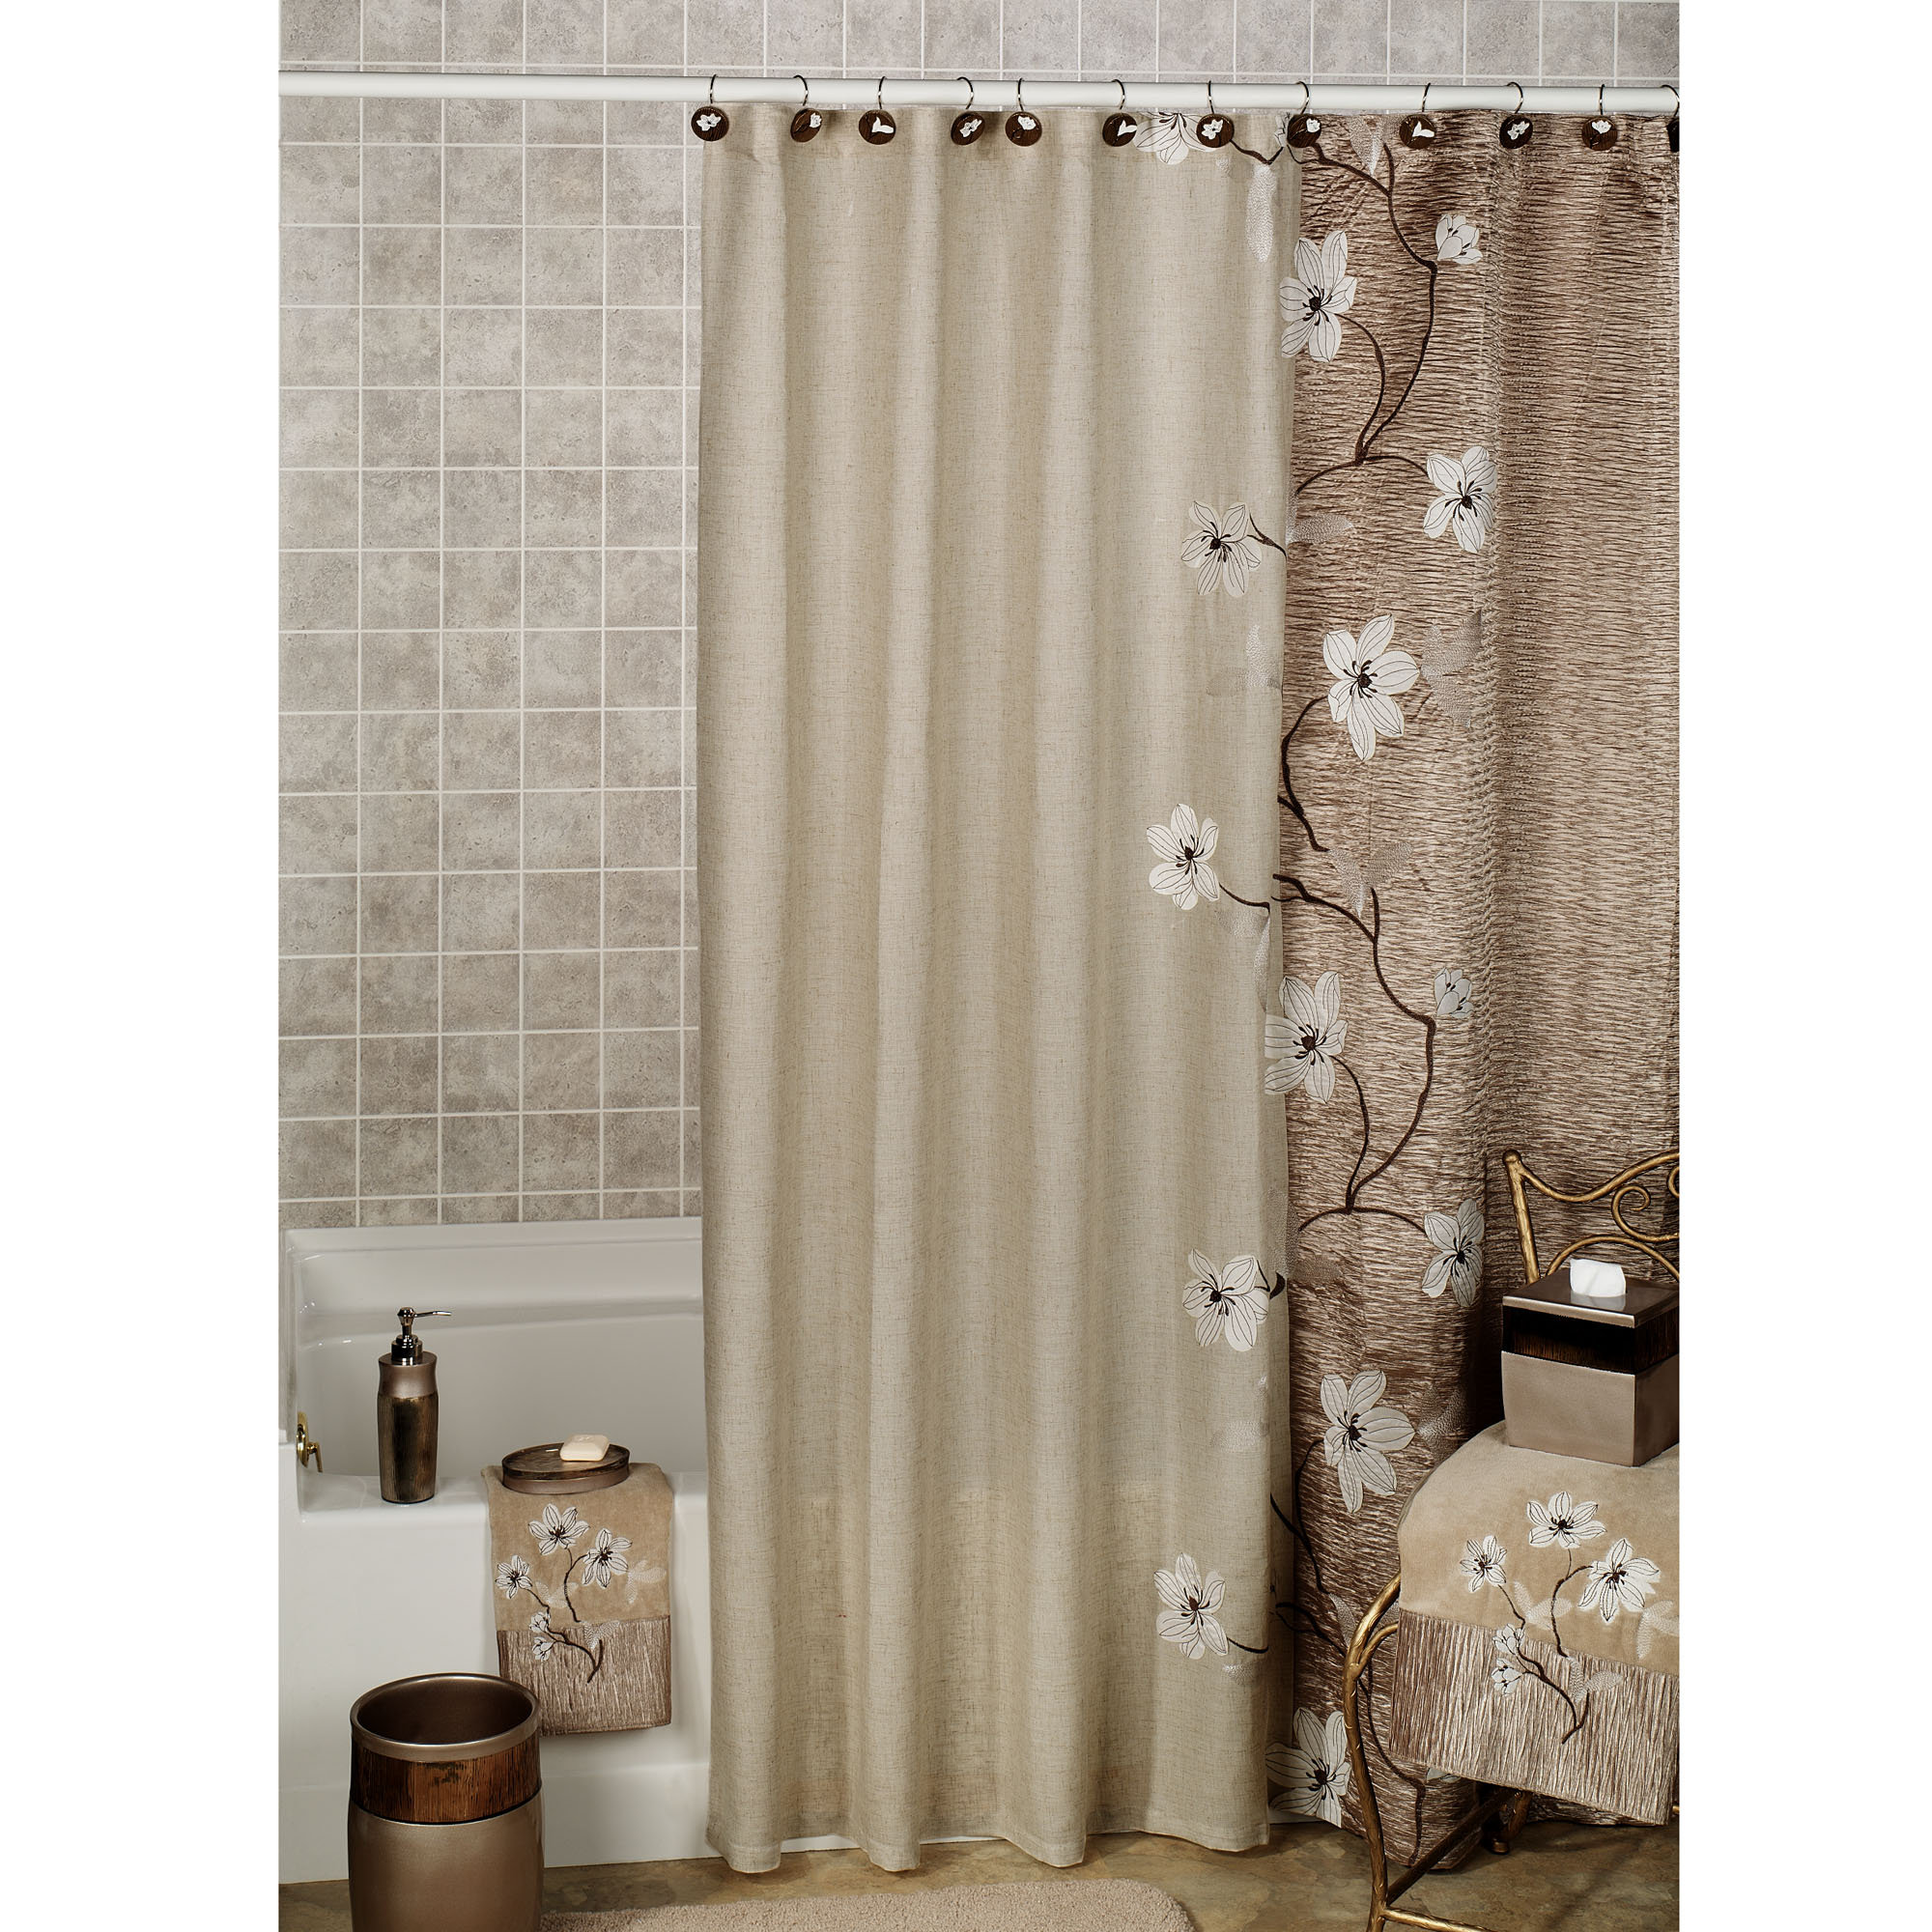 Home Magnolia Floral Shower Curtain by Croscill 2000x2000